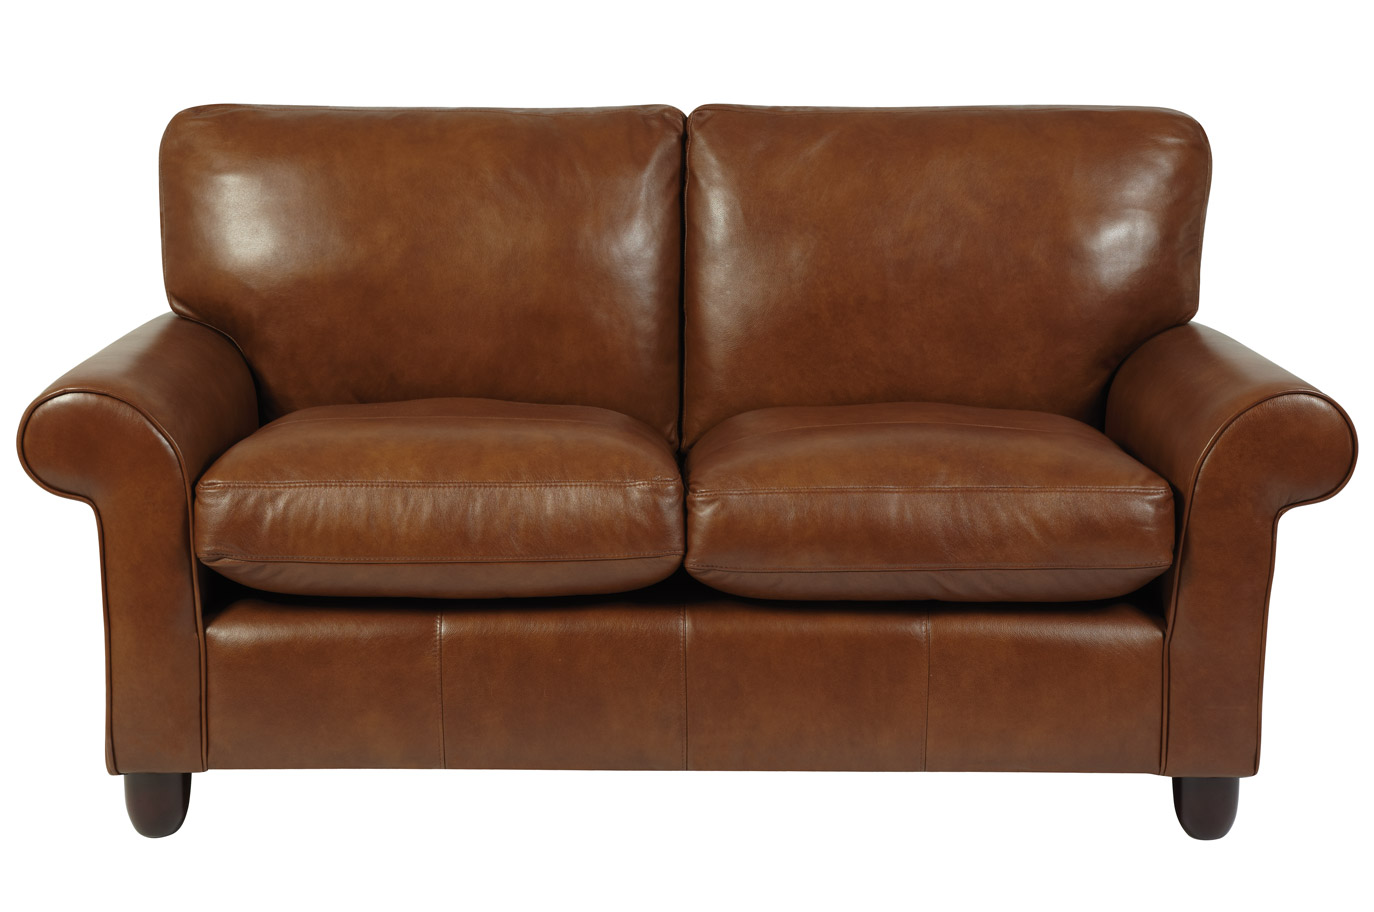 Small Leather Sofa Bed Sofa Leather Sectional Sleeper